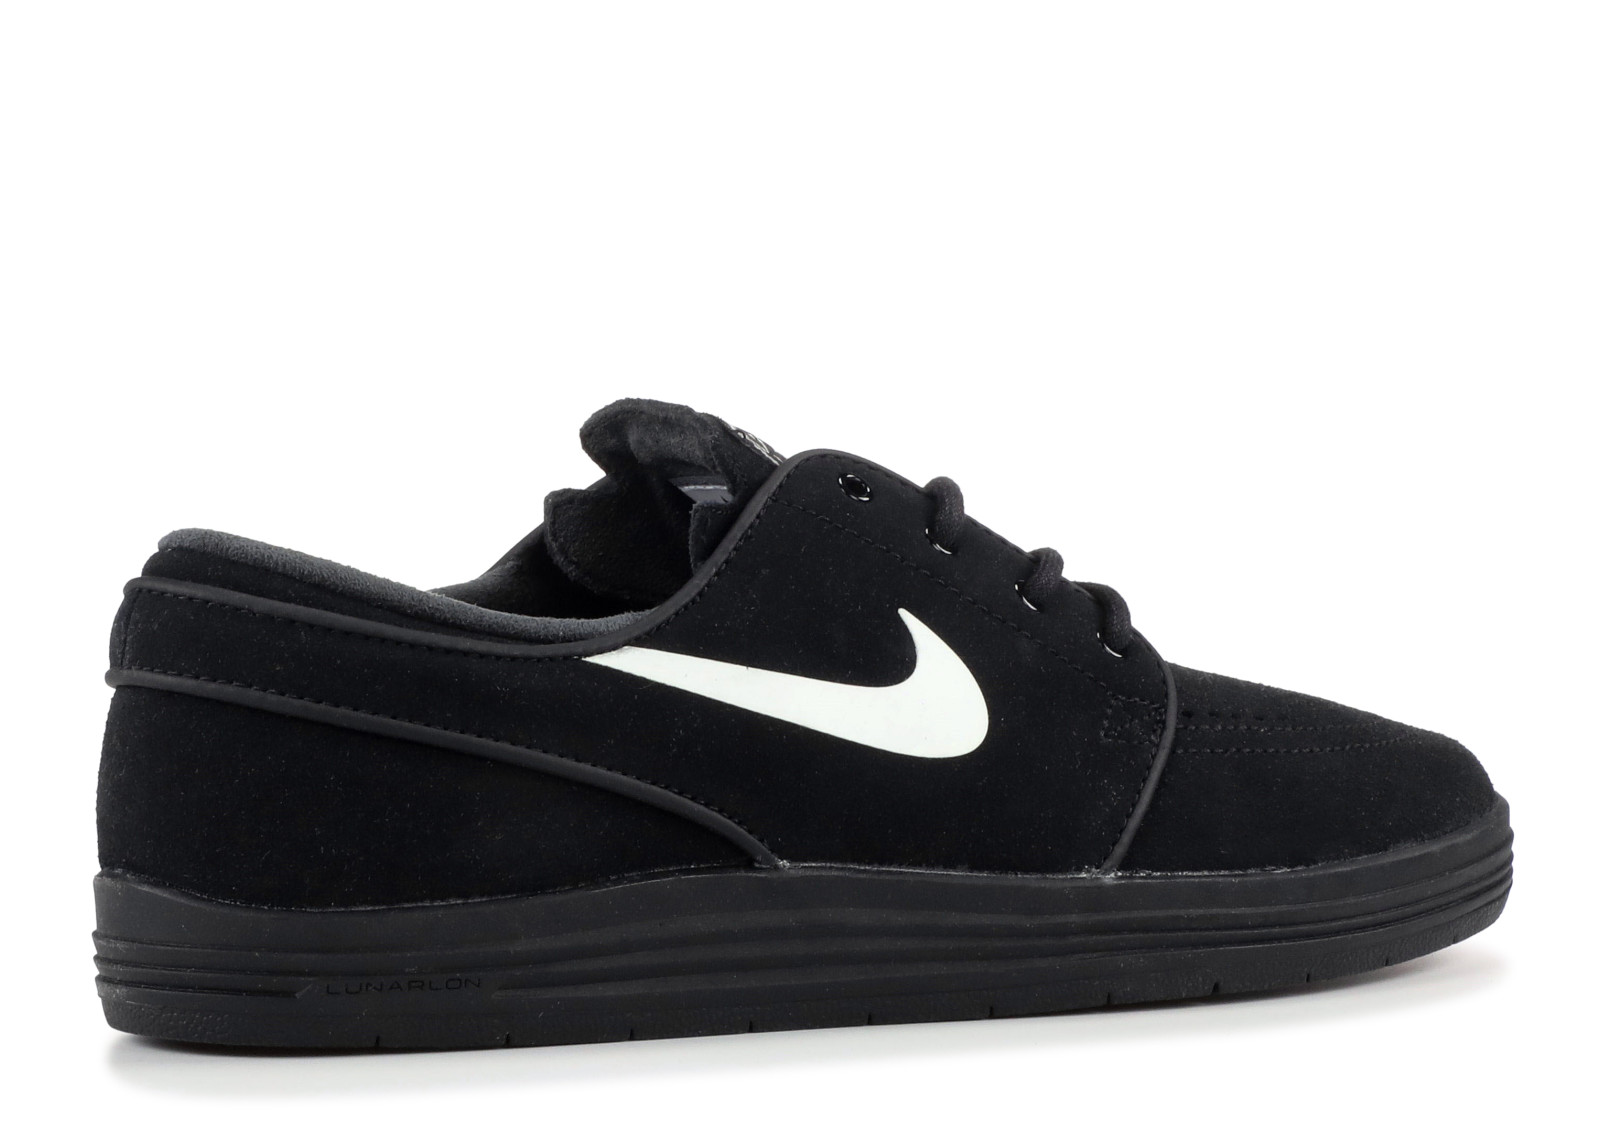 super popular 74533 4c6b7 ... Lunar Stefan Janoski White Black 654857-005 ...